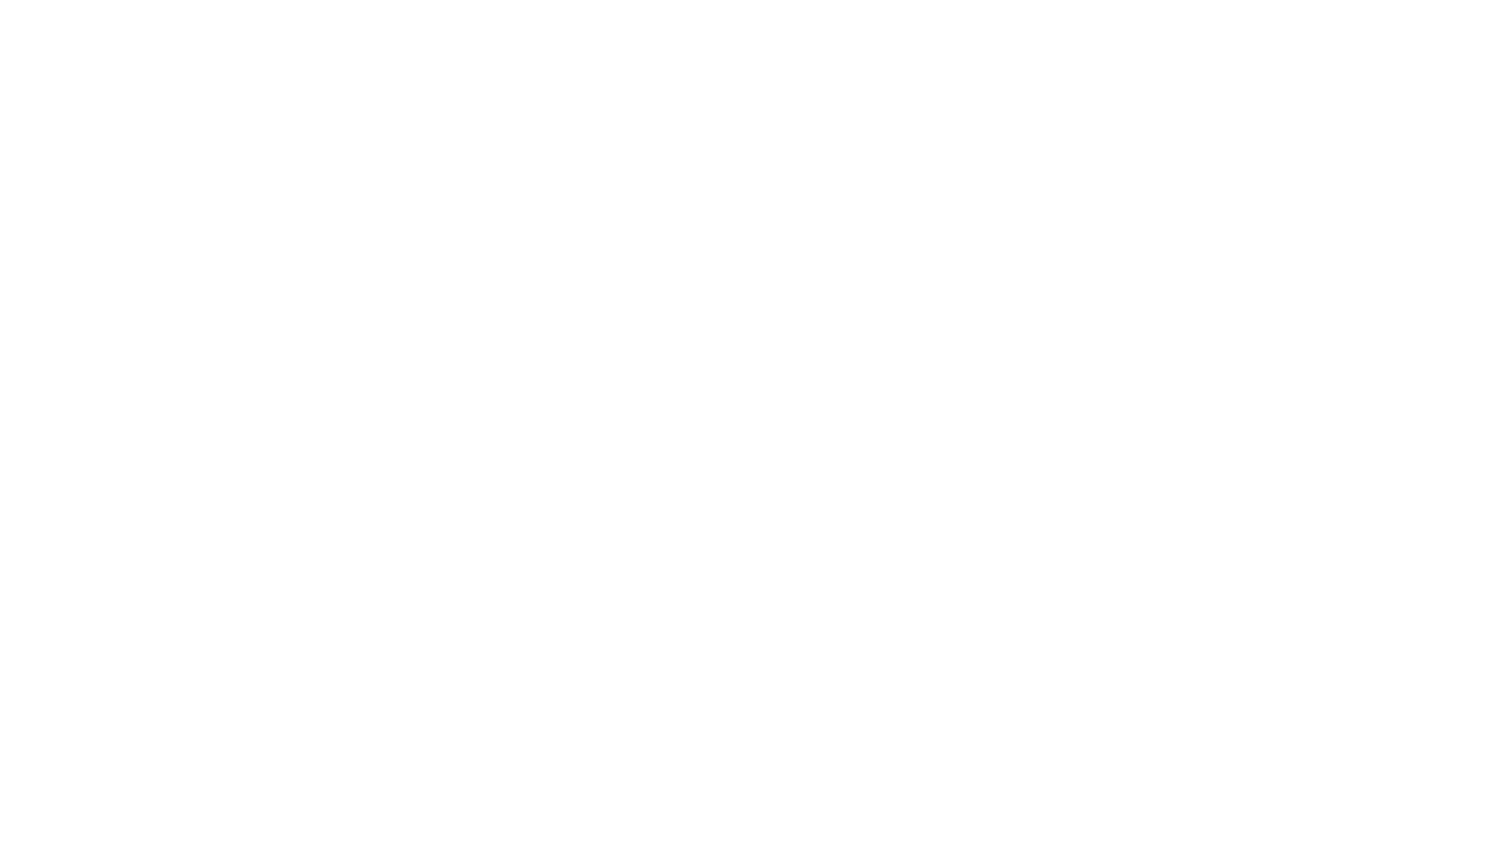 Project Inspire Arizona